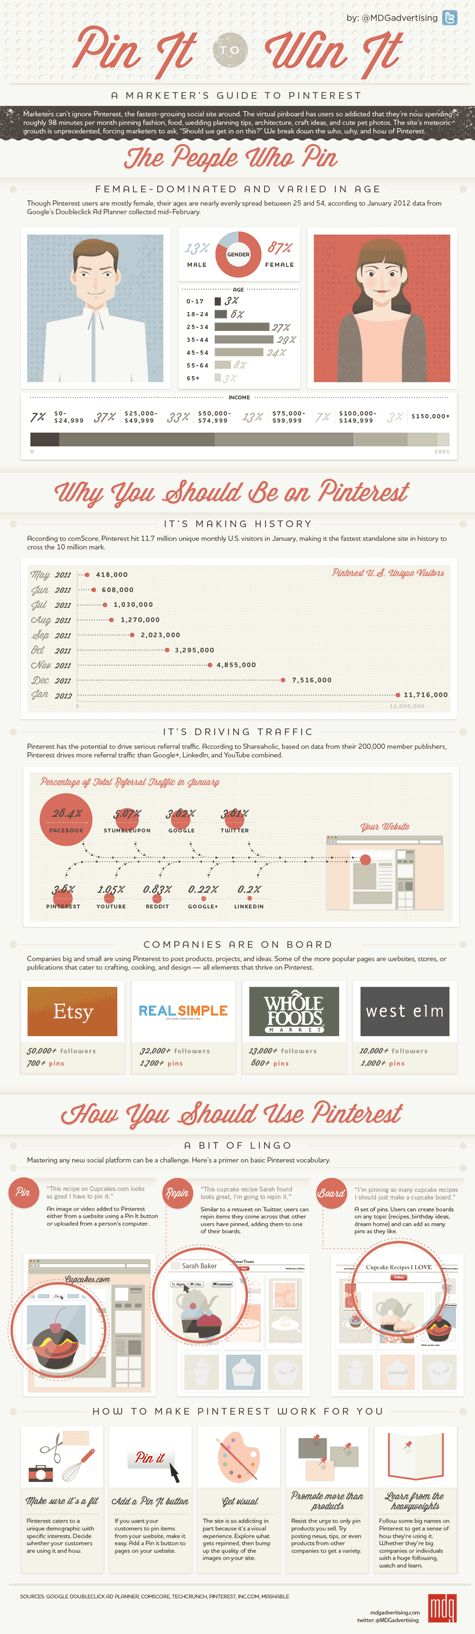 A Marketer's Guide To Pinterest: Pin It To Win It - Infographic by MDG Advertising